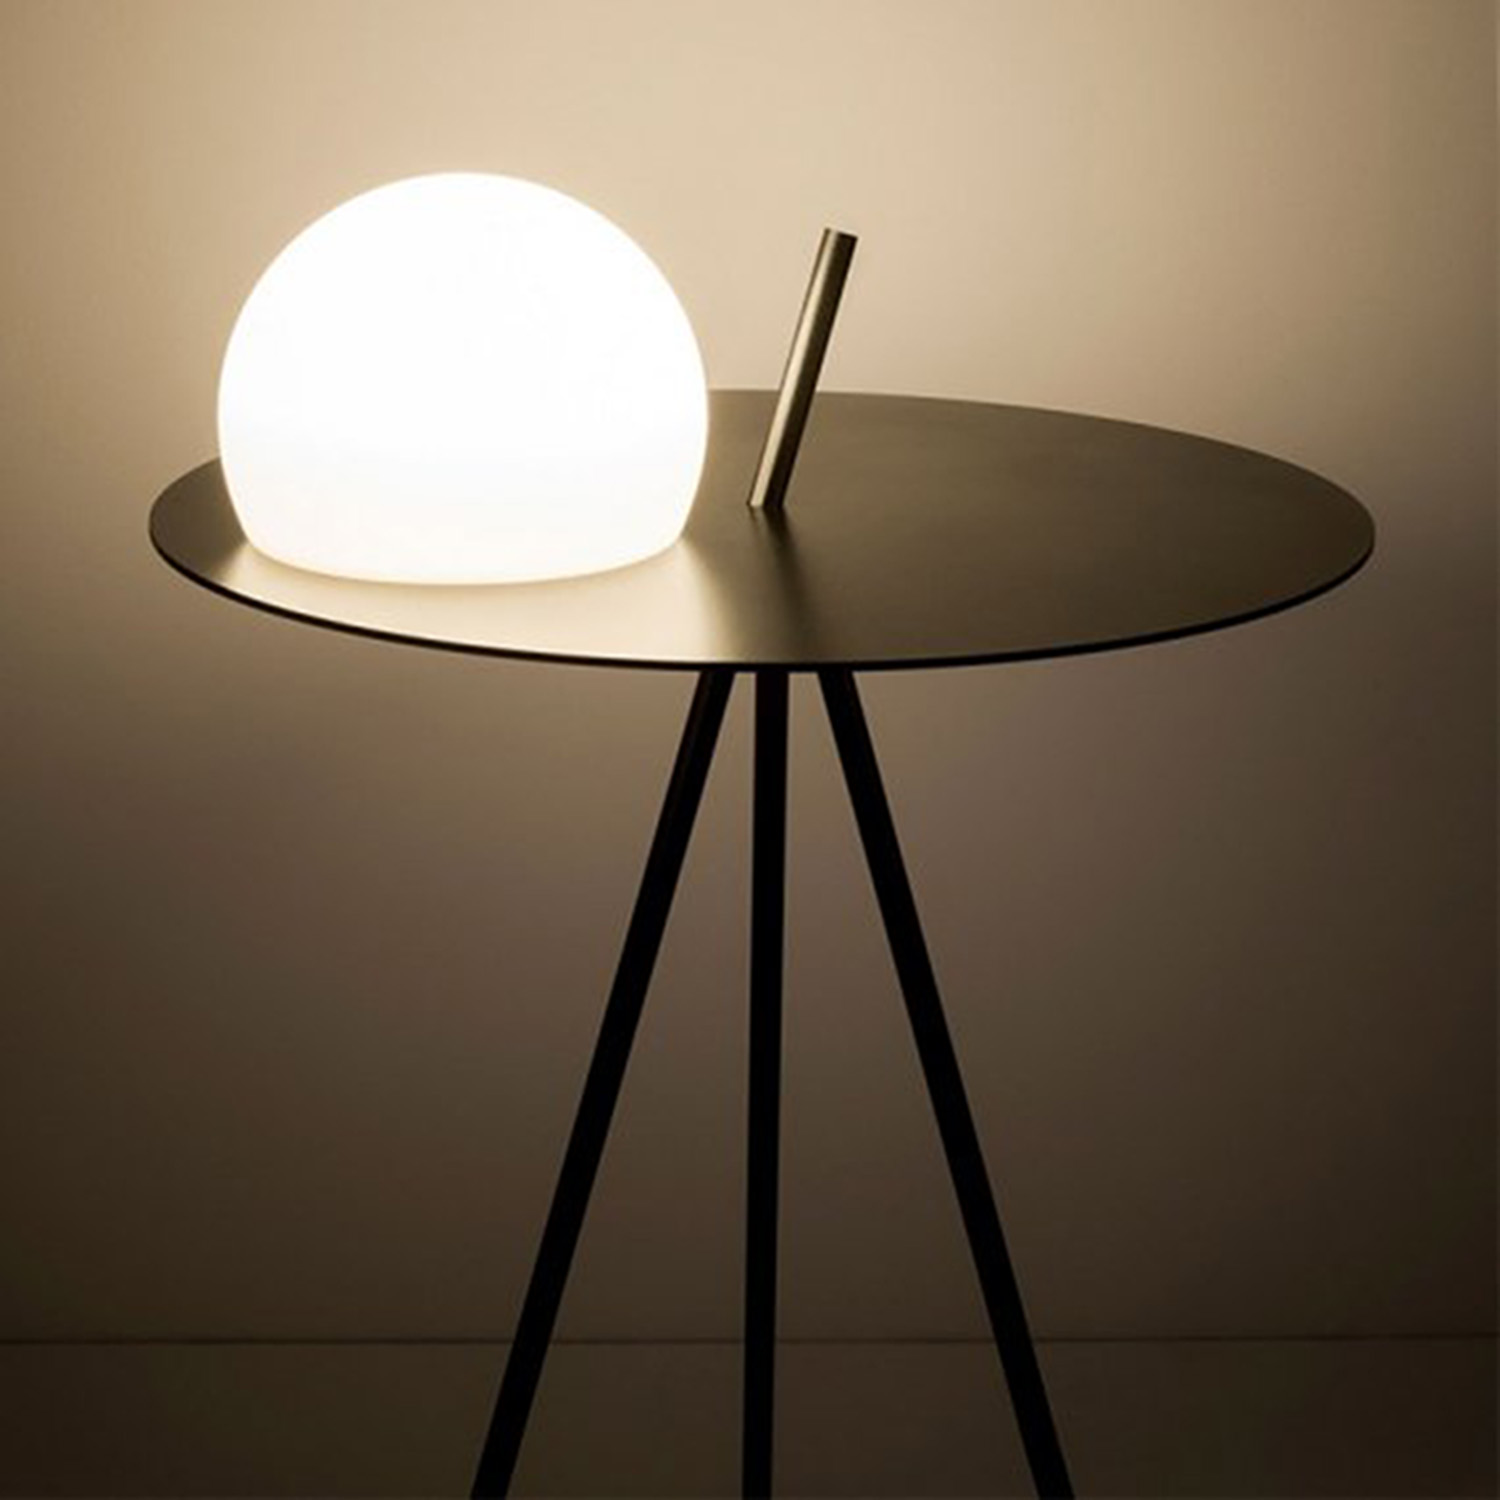 More information of Estiluz CIRC table lamp